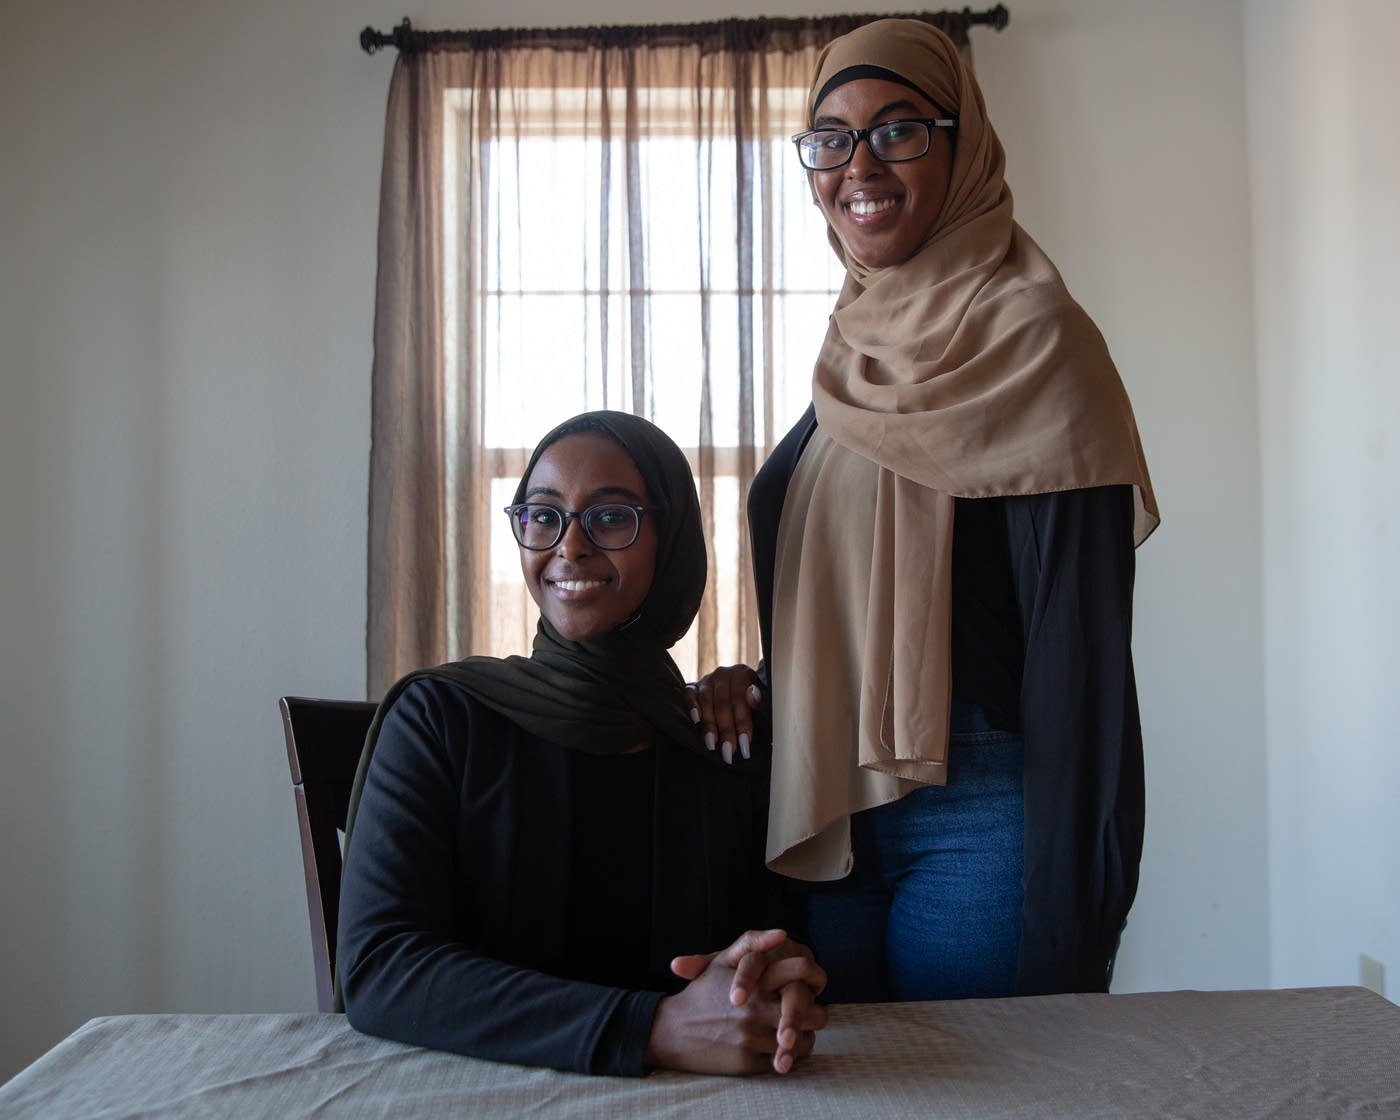 For Struggling Minnesota Muslims, Help is a Phone Call Away